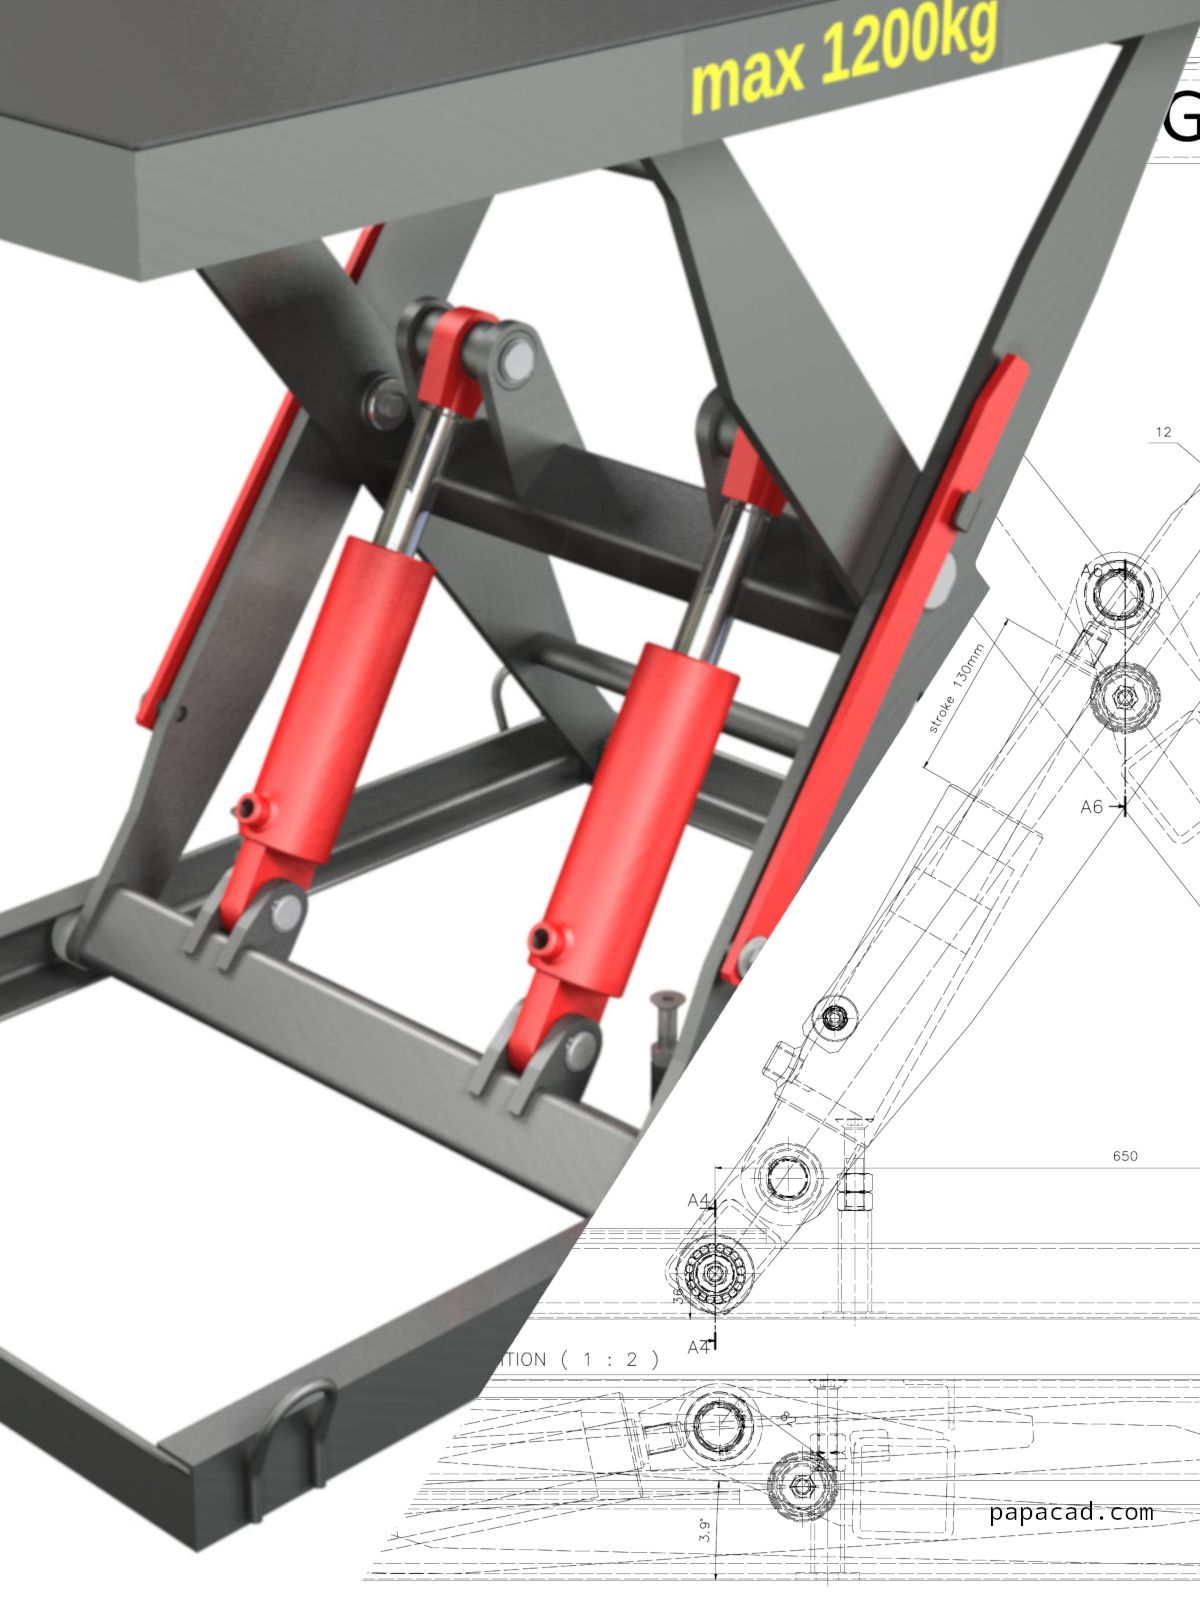 1200kg Hydraulic Scissor Table Lifter CAD design